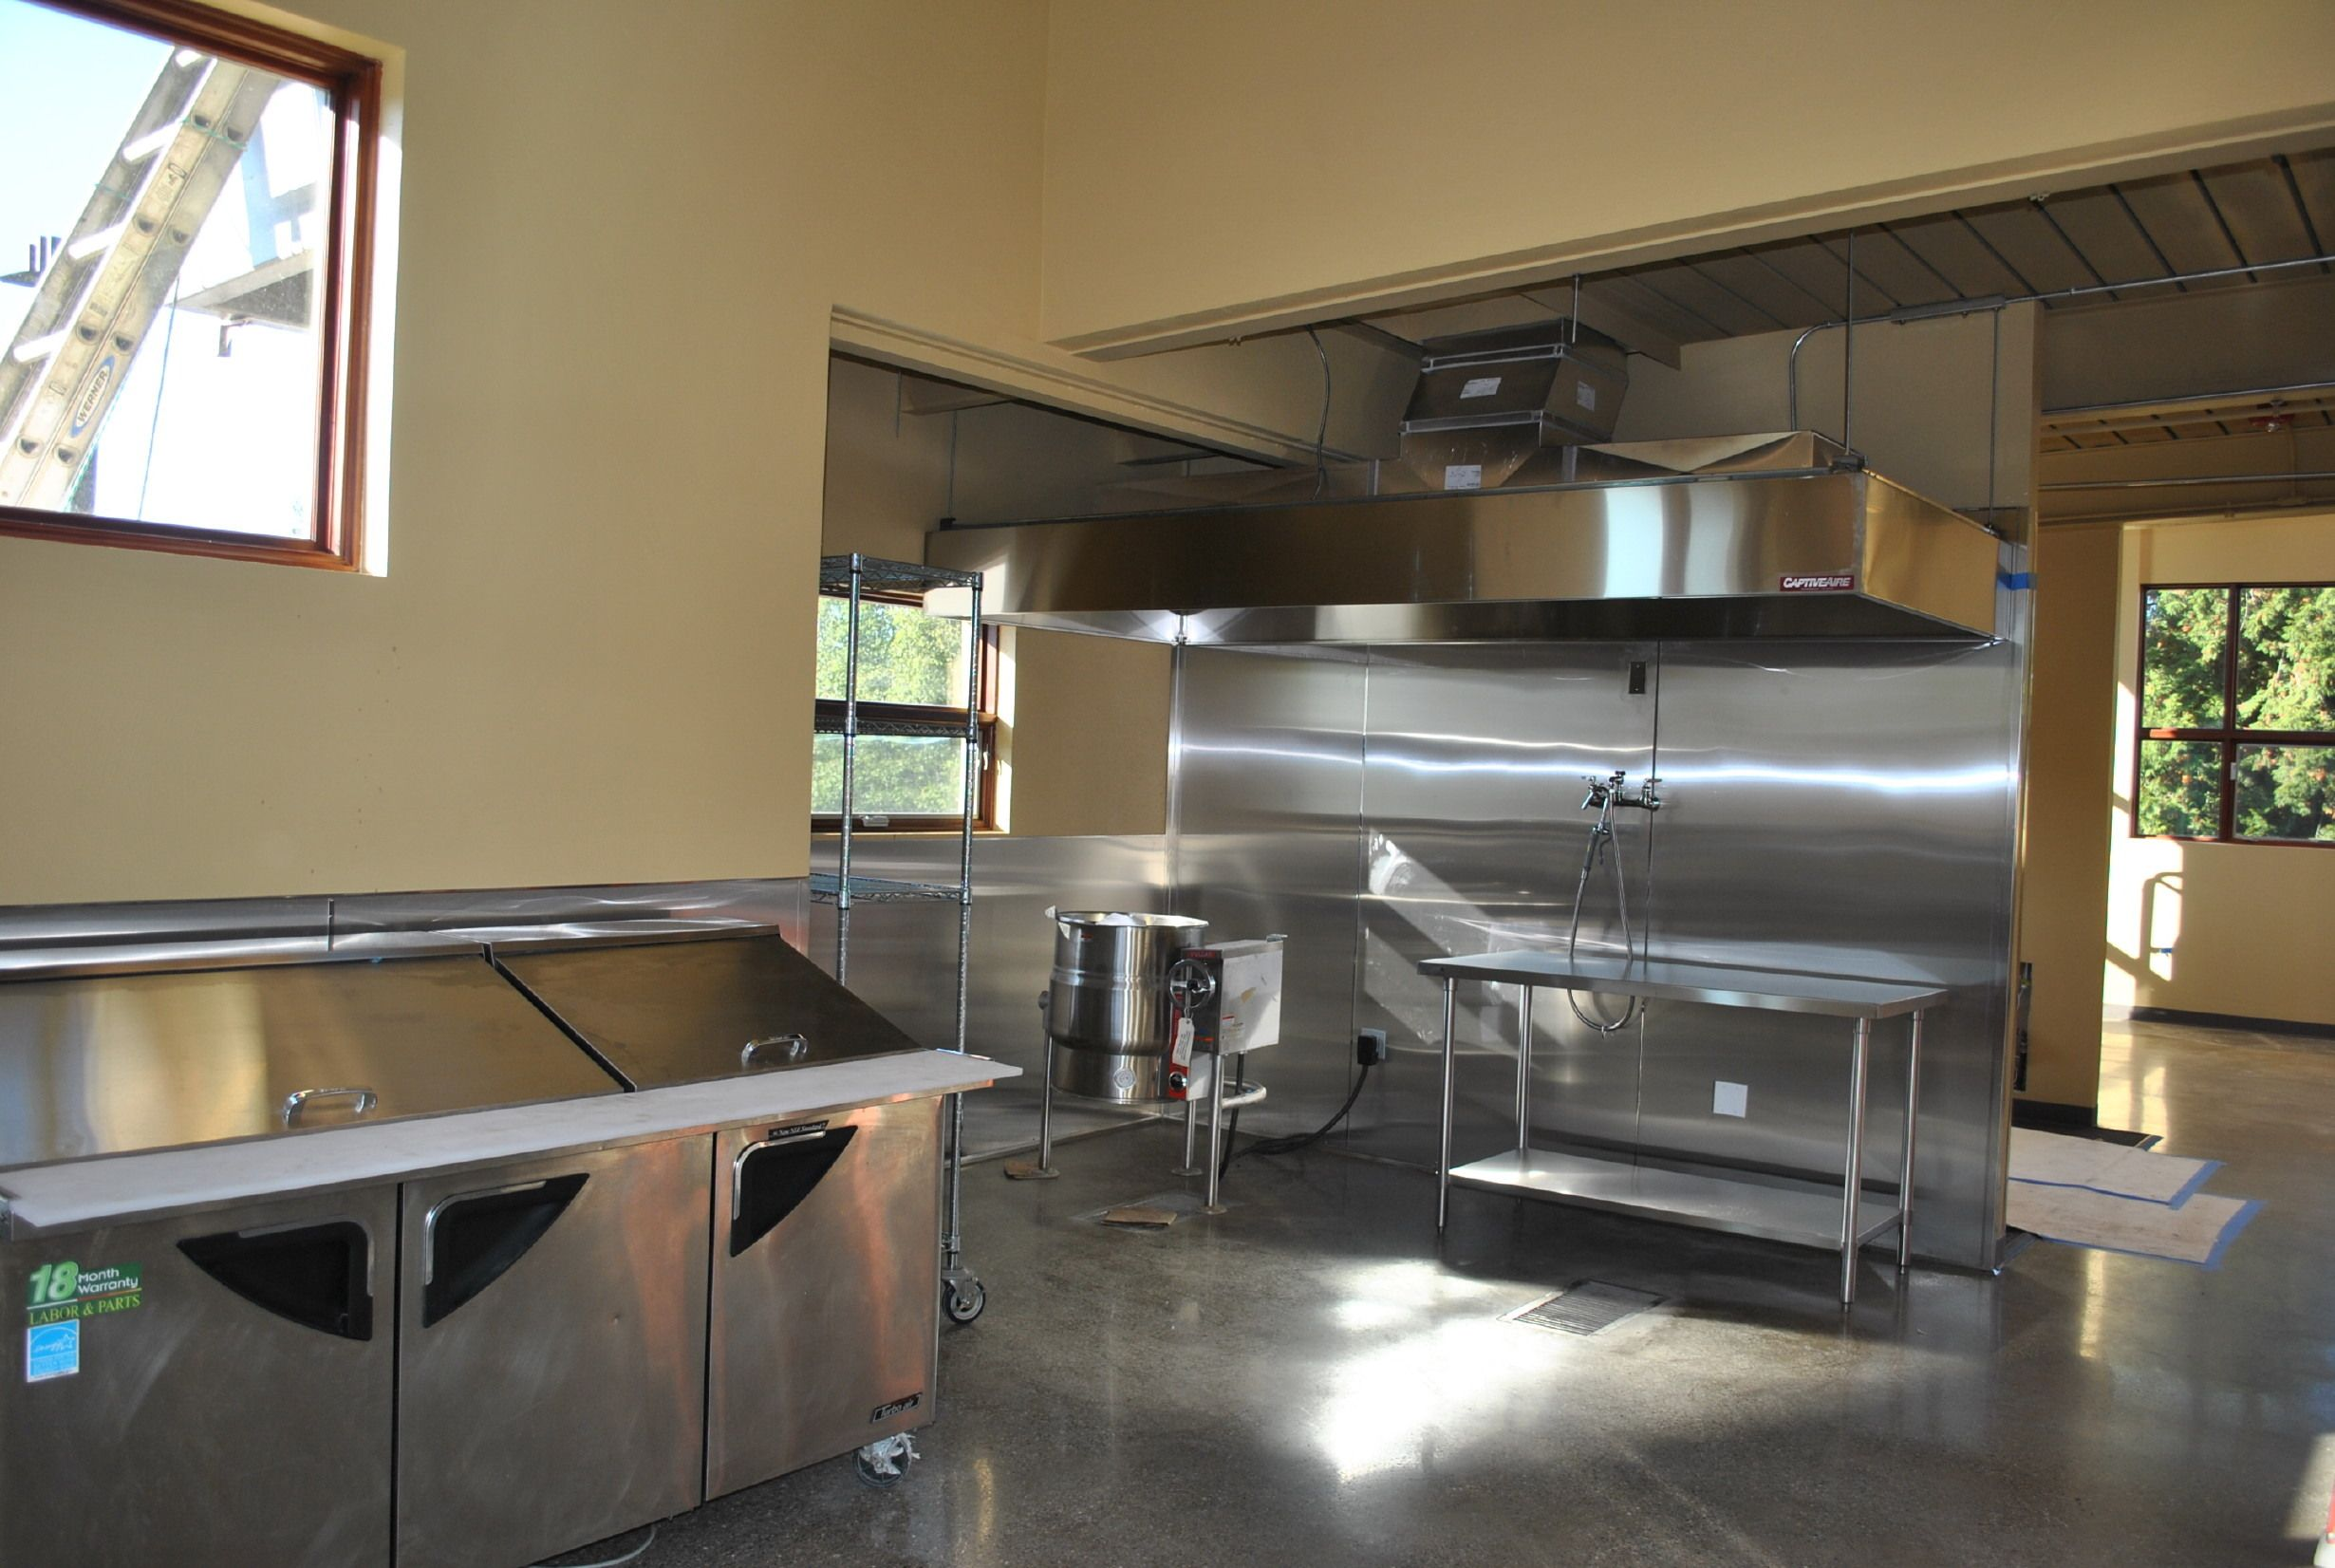 project restaurant architecture in countertops tampa z architects the mesh restaurantarchitects llc best by grille